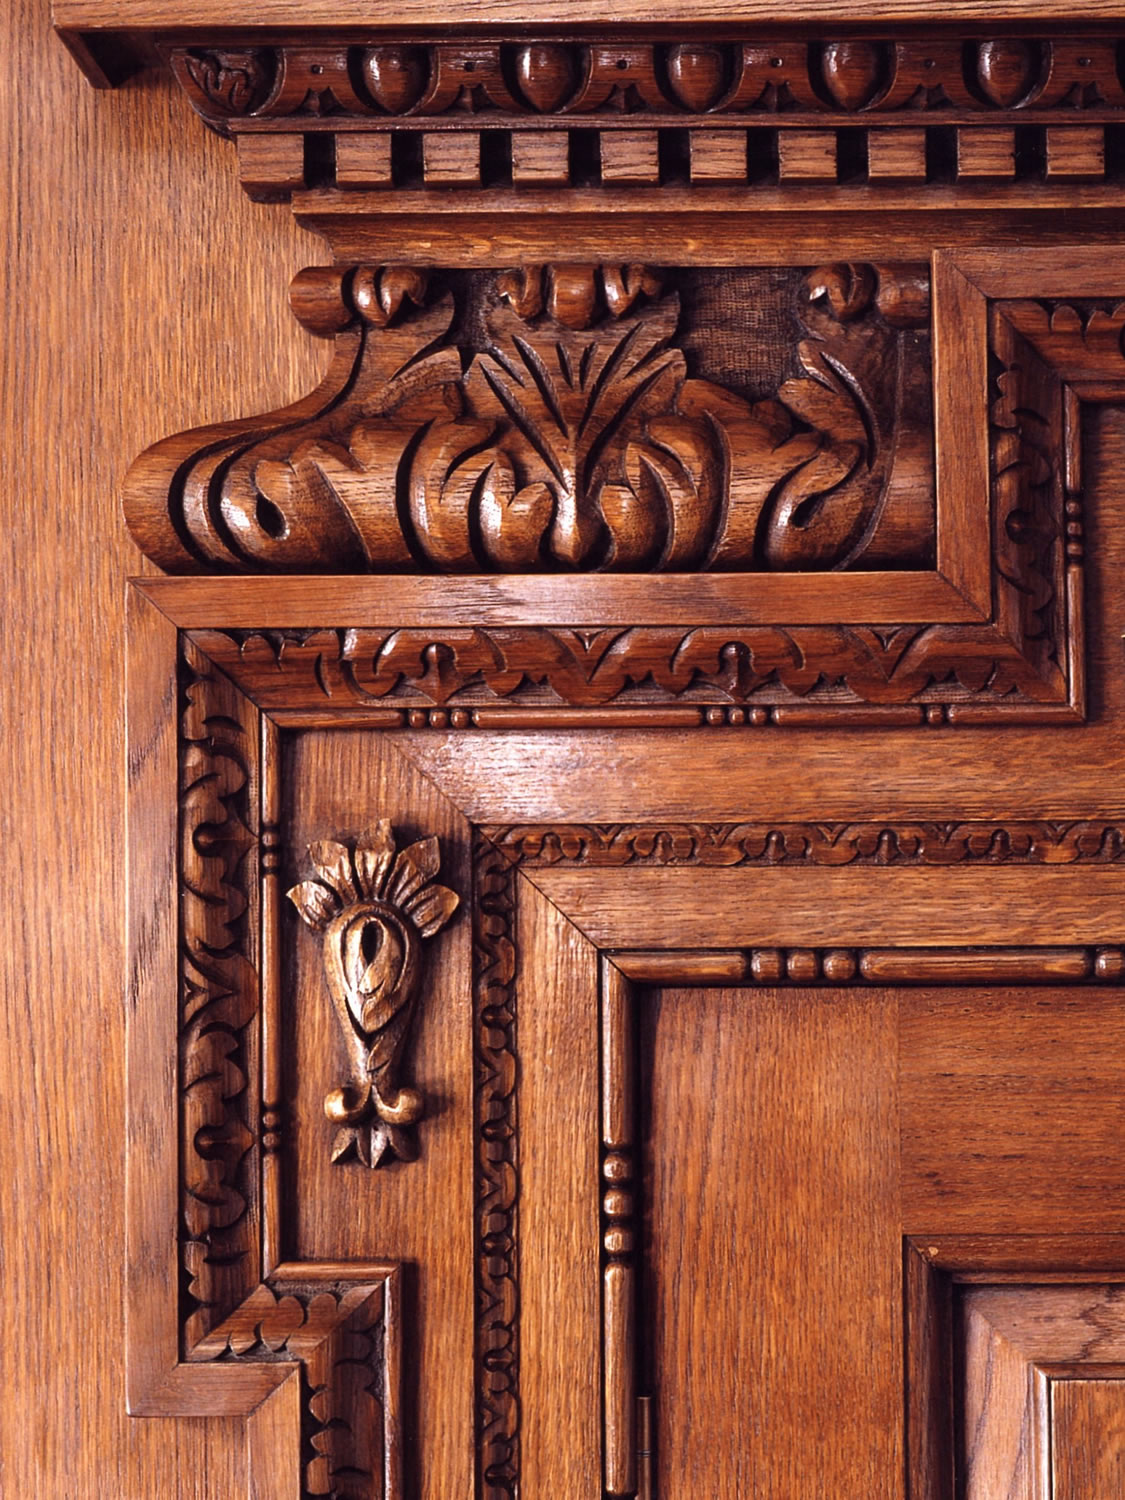 Georgian style, hand-carved oak pediment